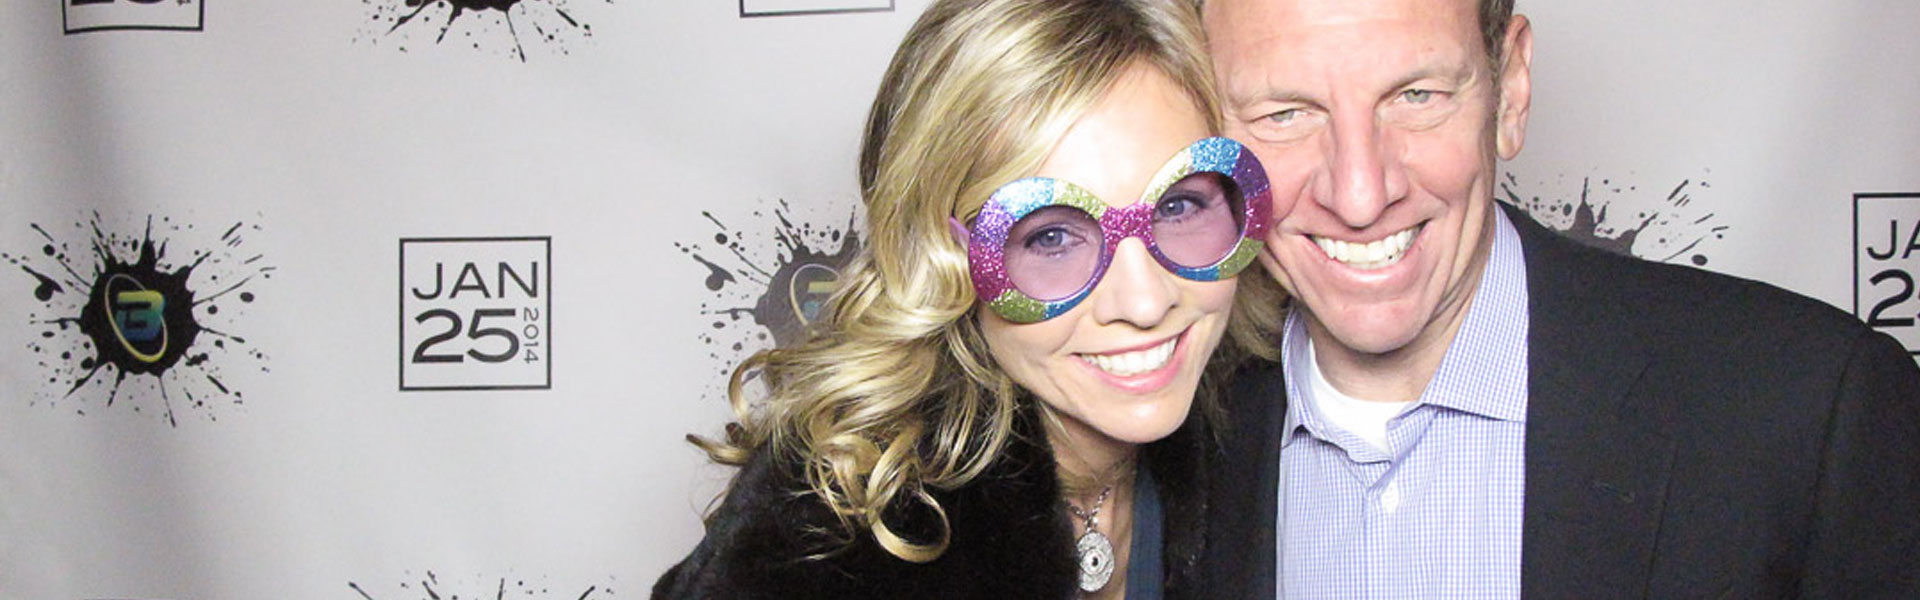 Youbooth Photo Booth - Corporate Photography